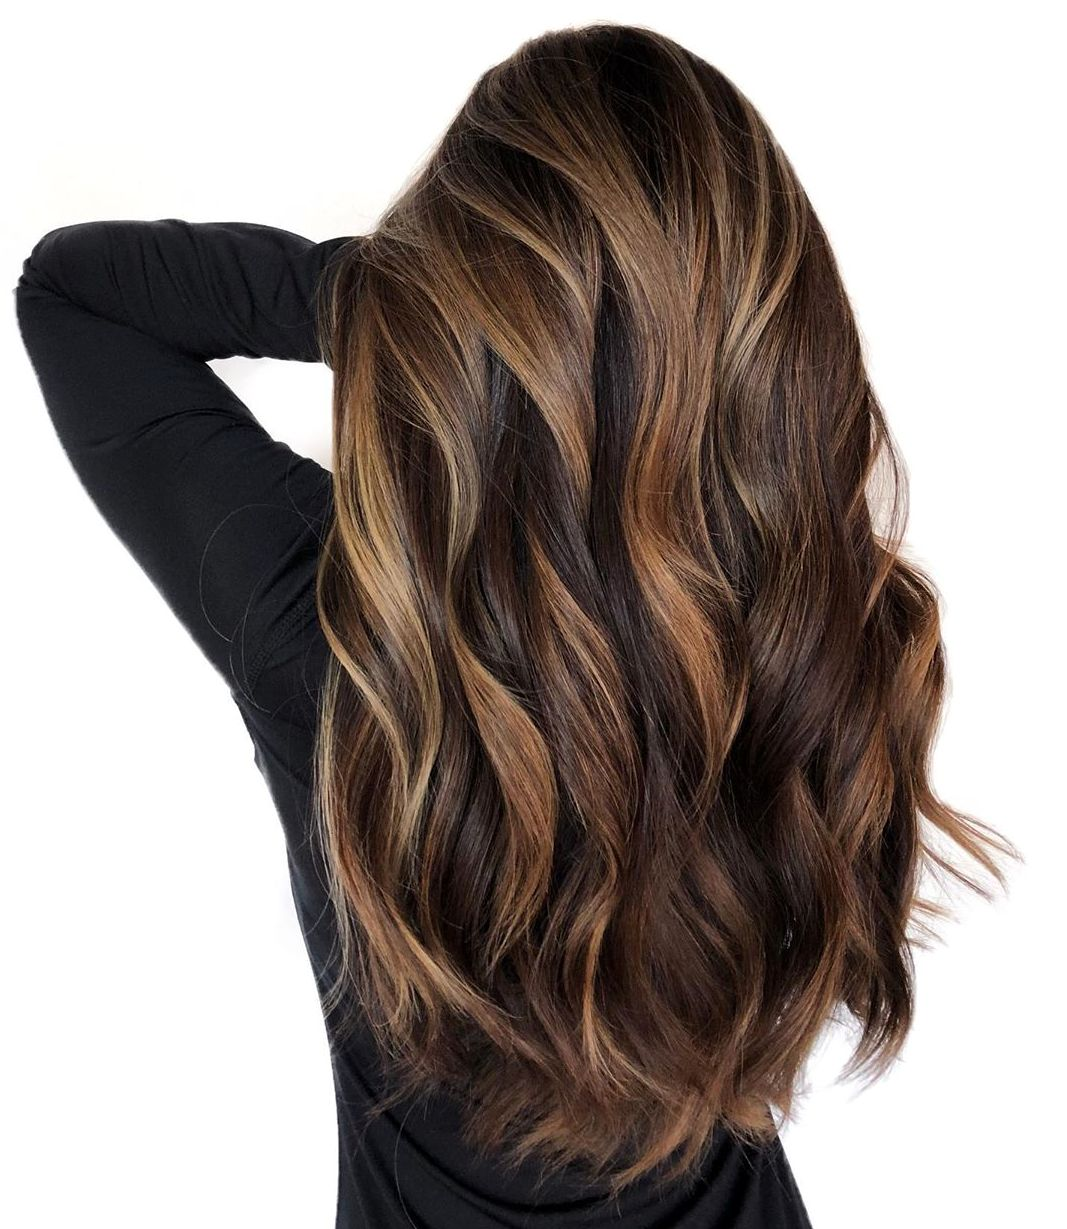 Dark Chocolate Hair with Auburn Highlights